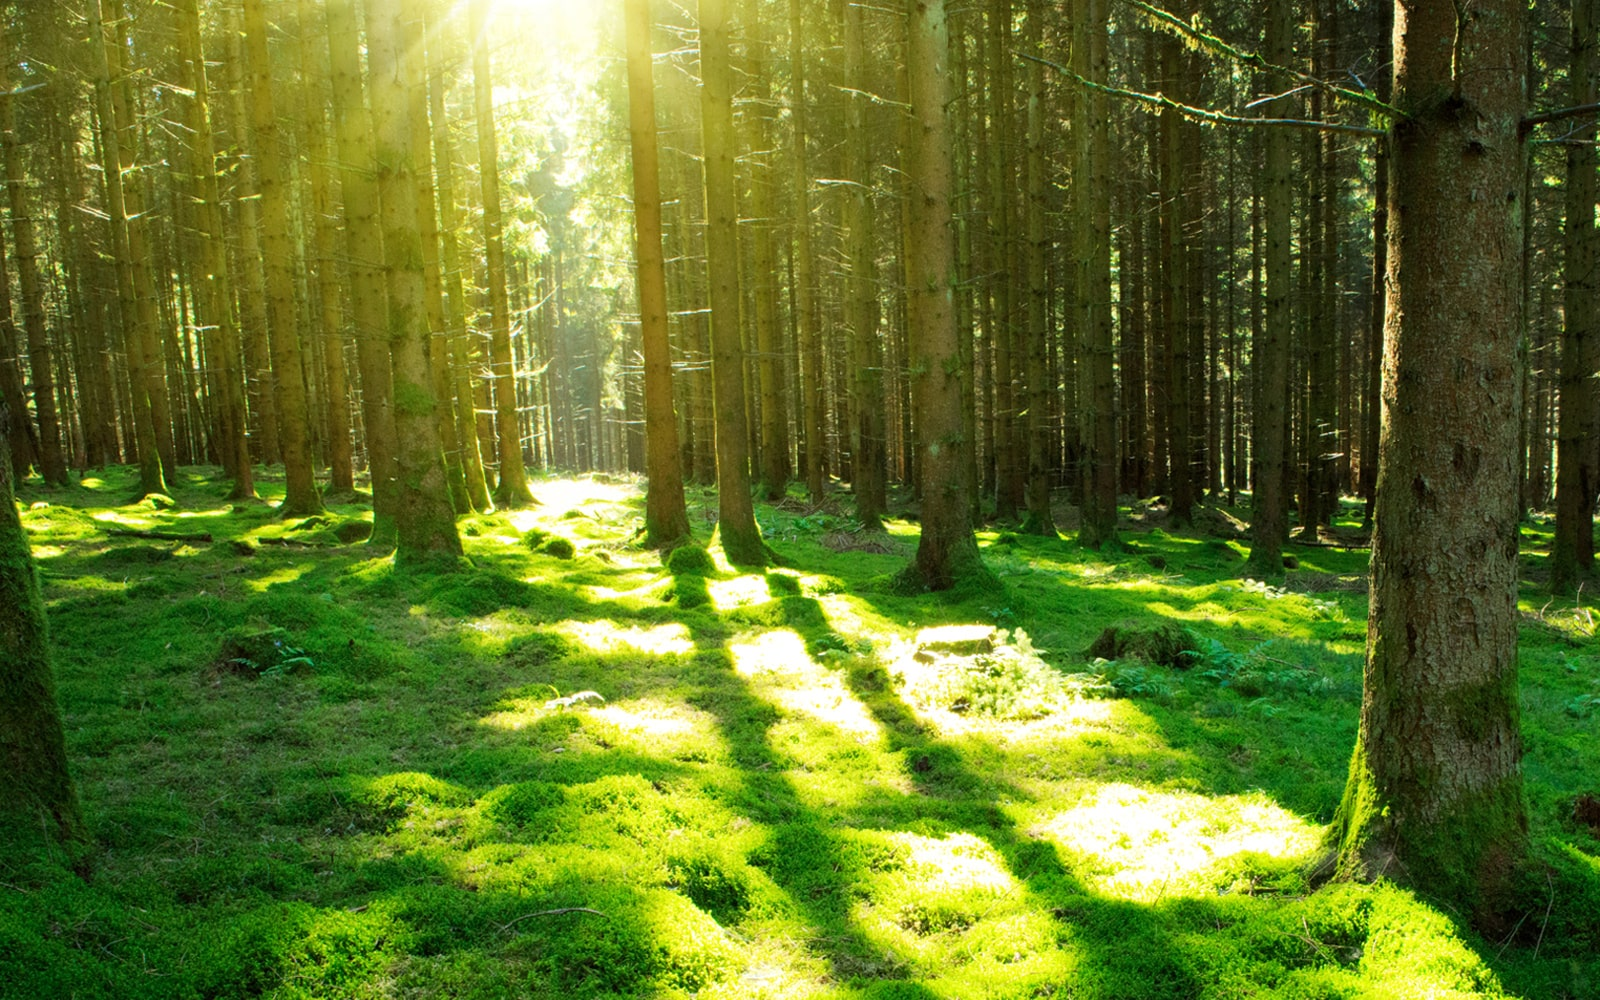 sun shines through the evergreen forest.